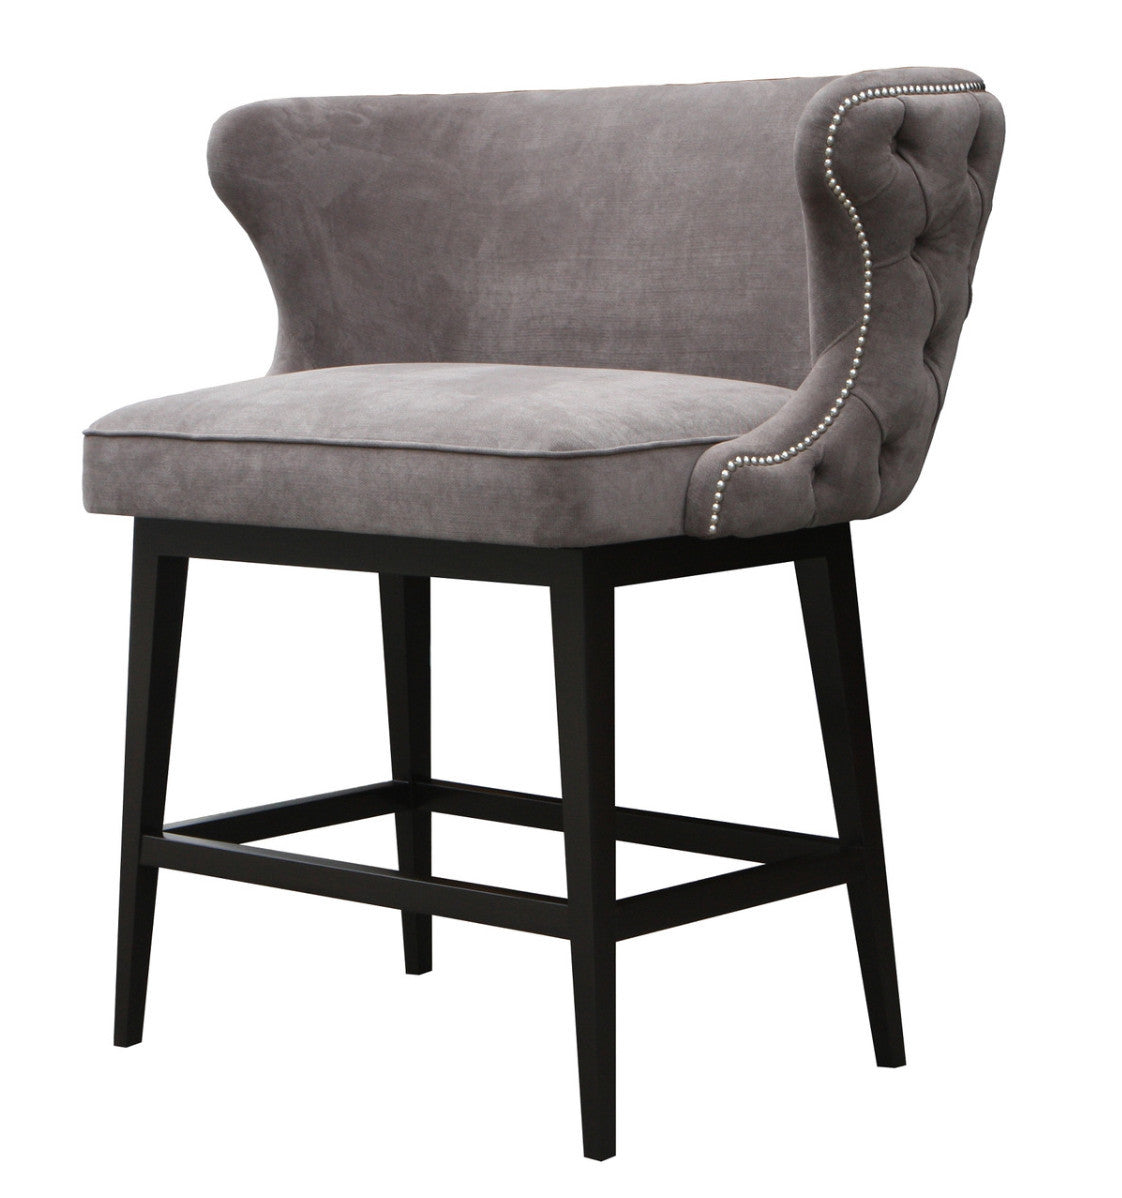 Belair Tufted Bar Stool Bench